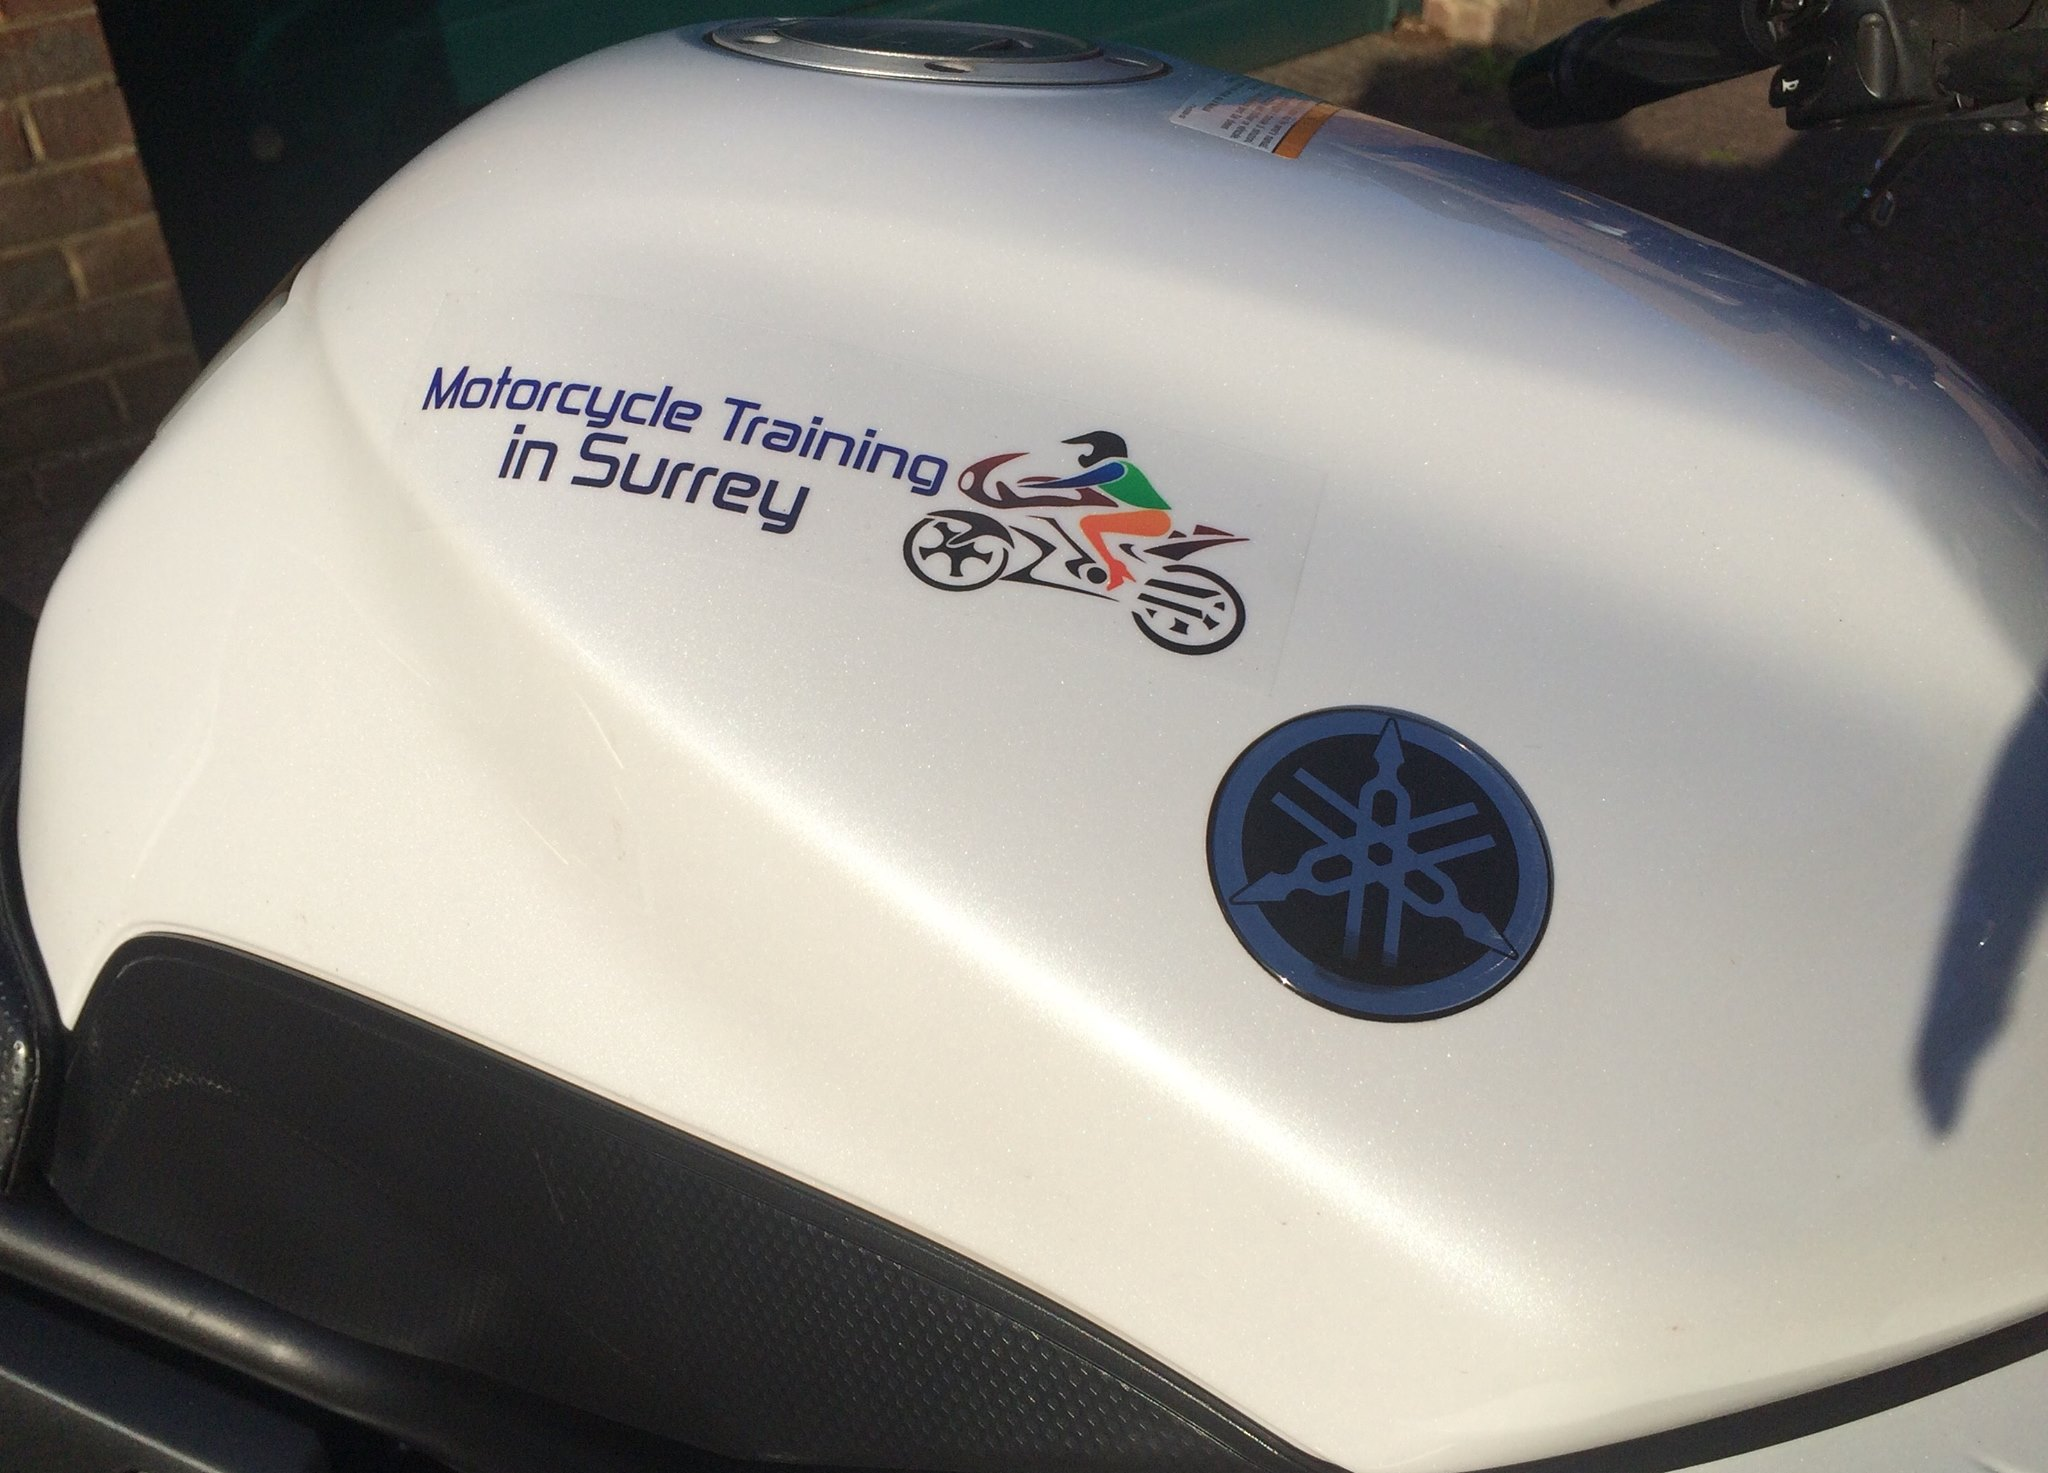 Motorcycle Training in Surrey branded bike